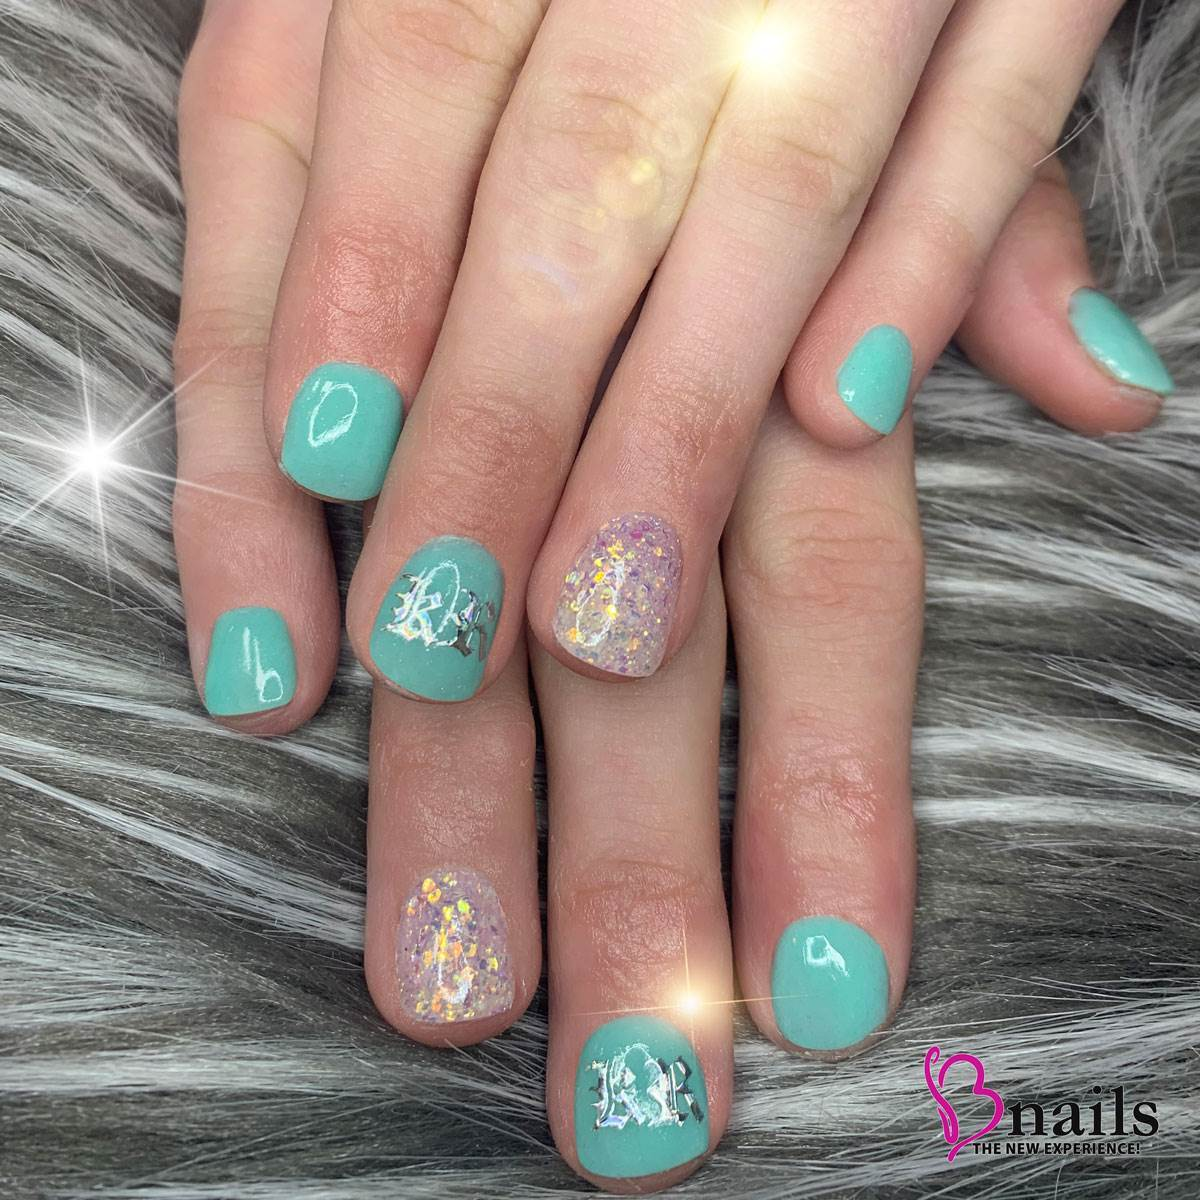 Top 3 tips: To Find Best Nails Salon in Amarillo